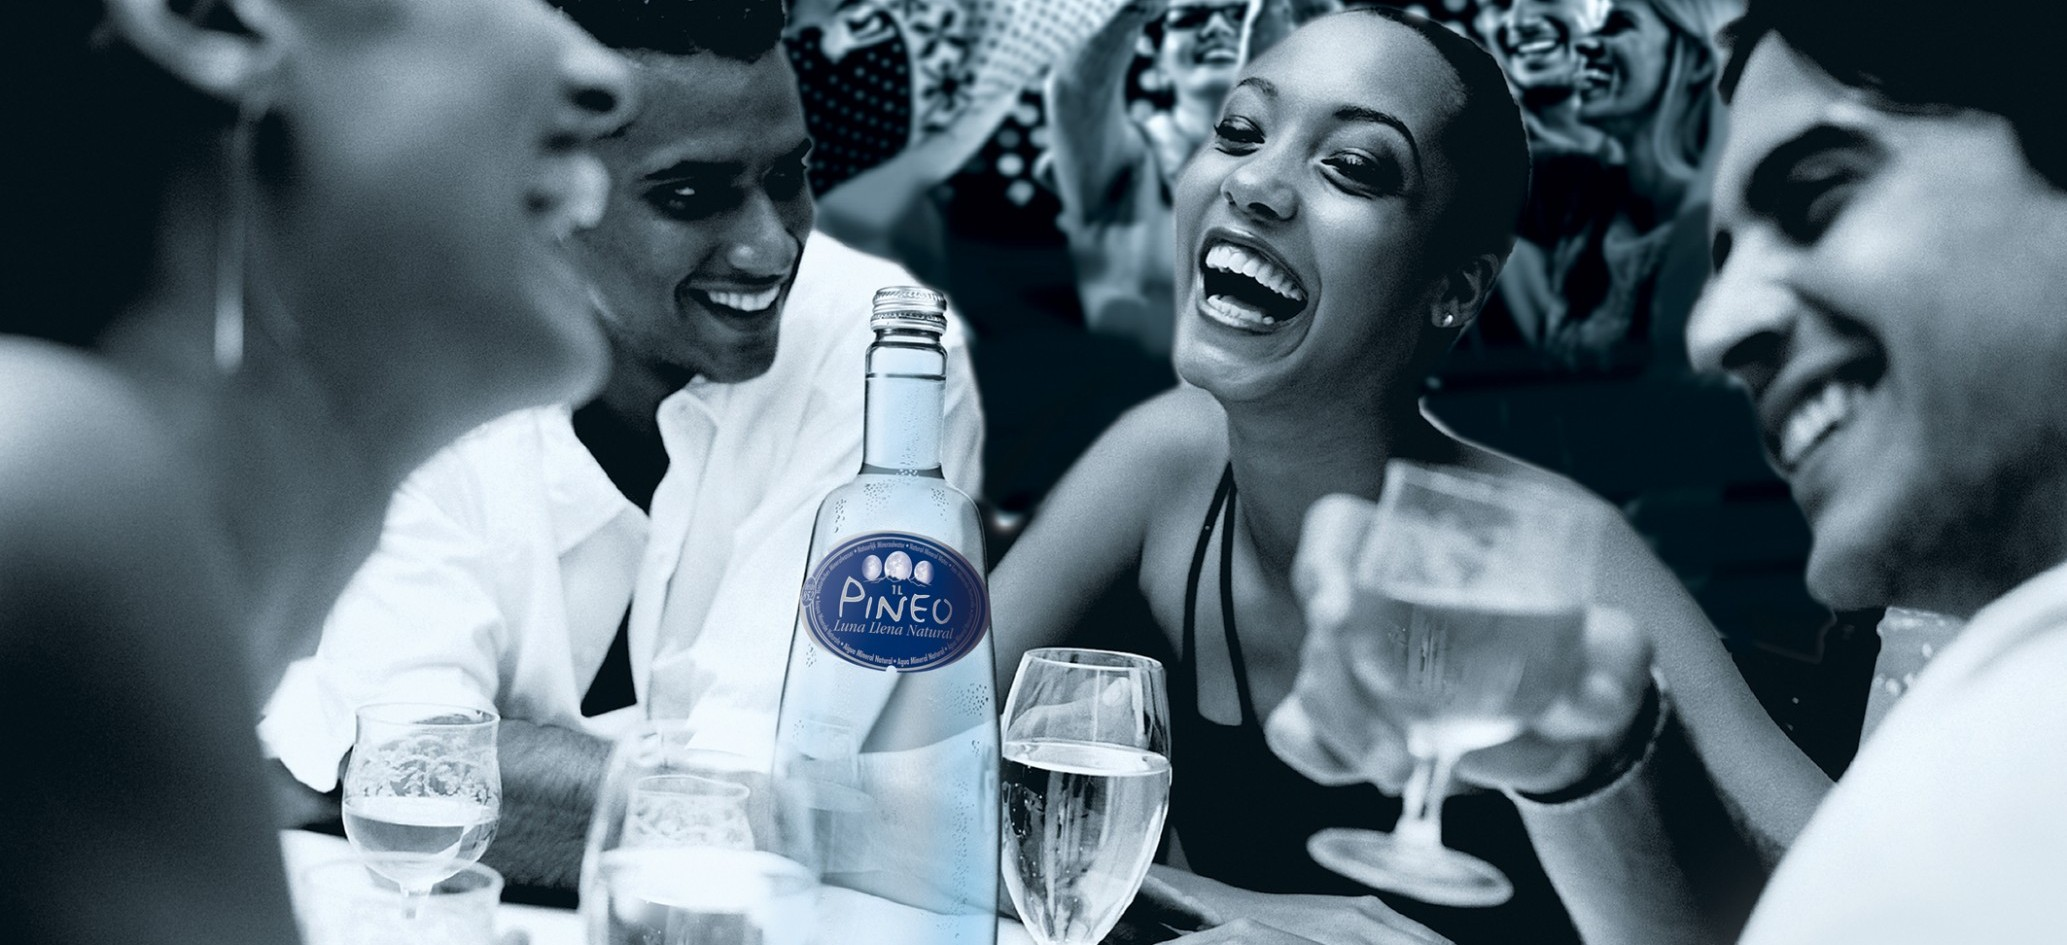 Pineo mineral water within reach at a party